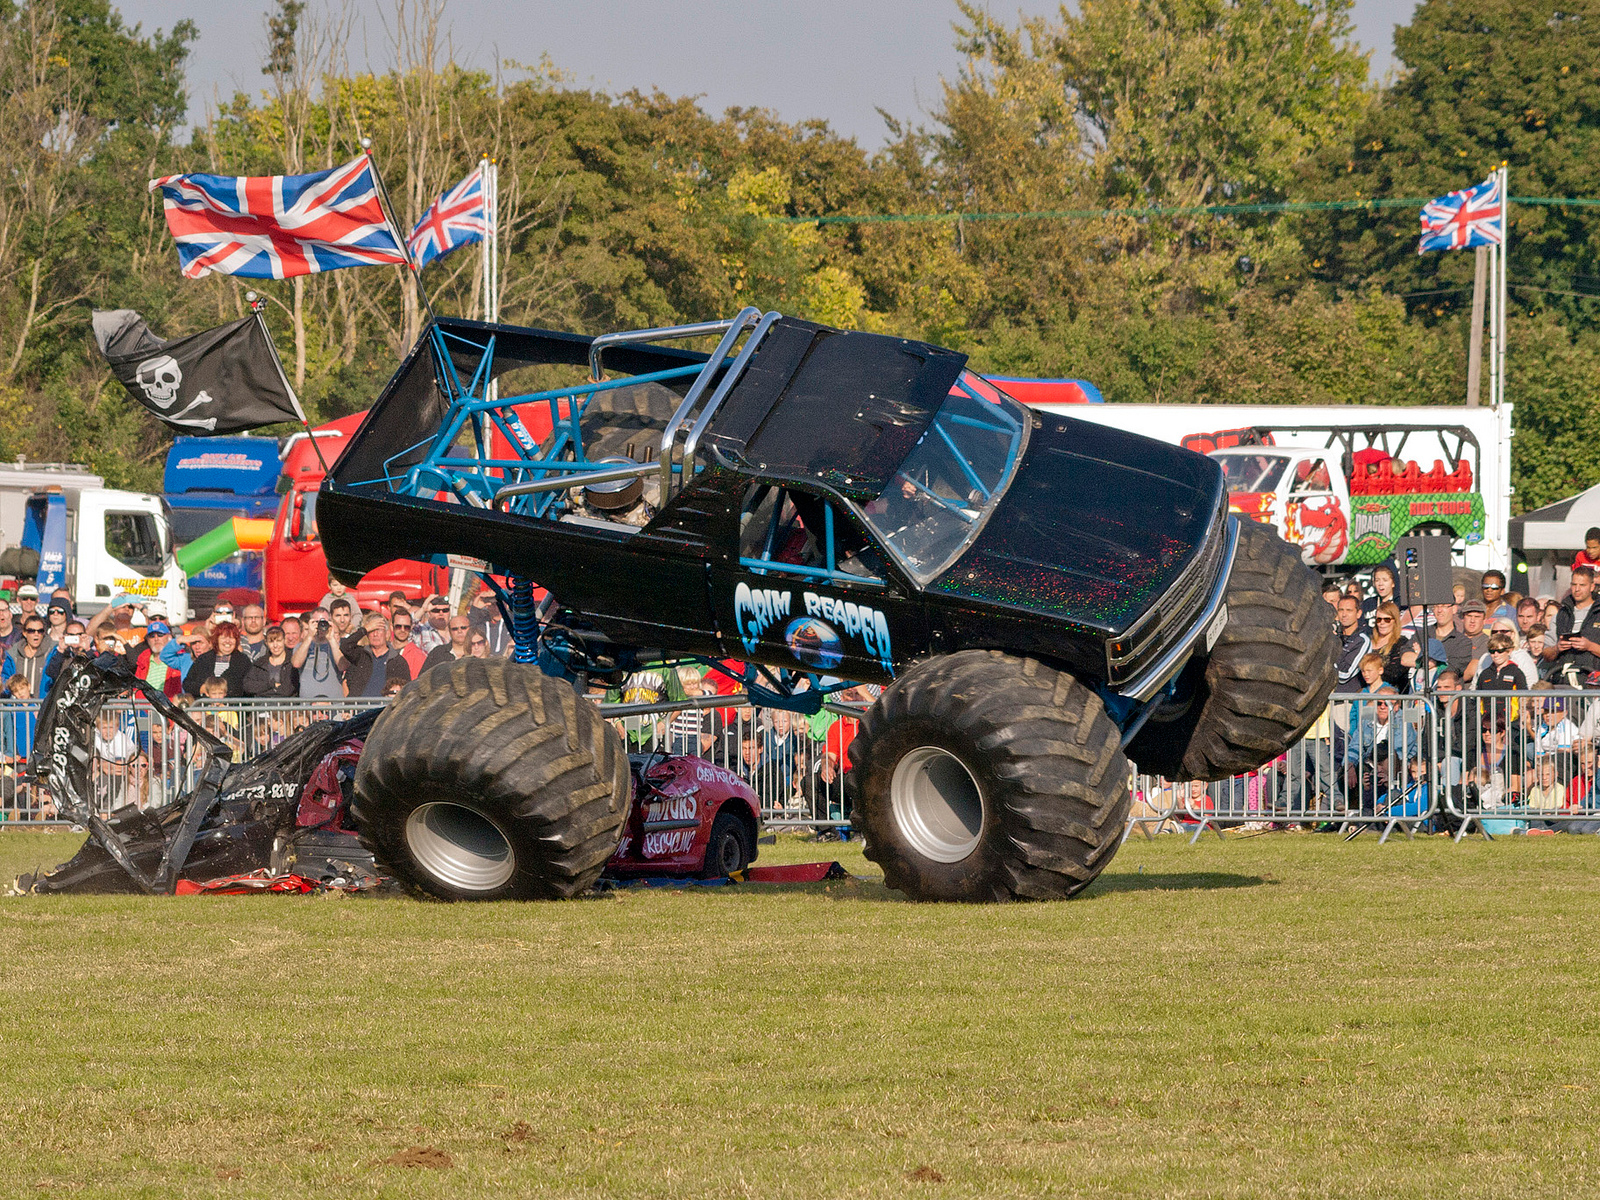 Published July 13, at × in Giveaway: Monster Jam Truck Rally in SLC on 2/16 at 2pm (Visited 1 times, 1 visits today) Post a comment or leave a trackback: Trackback URL.